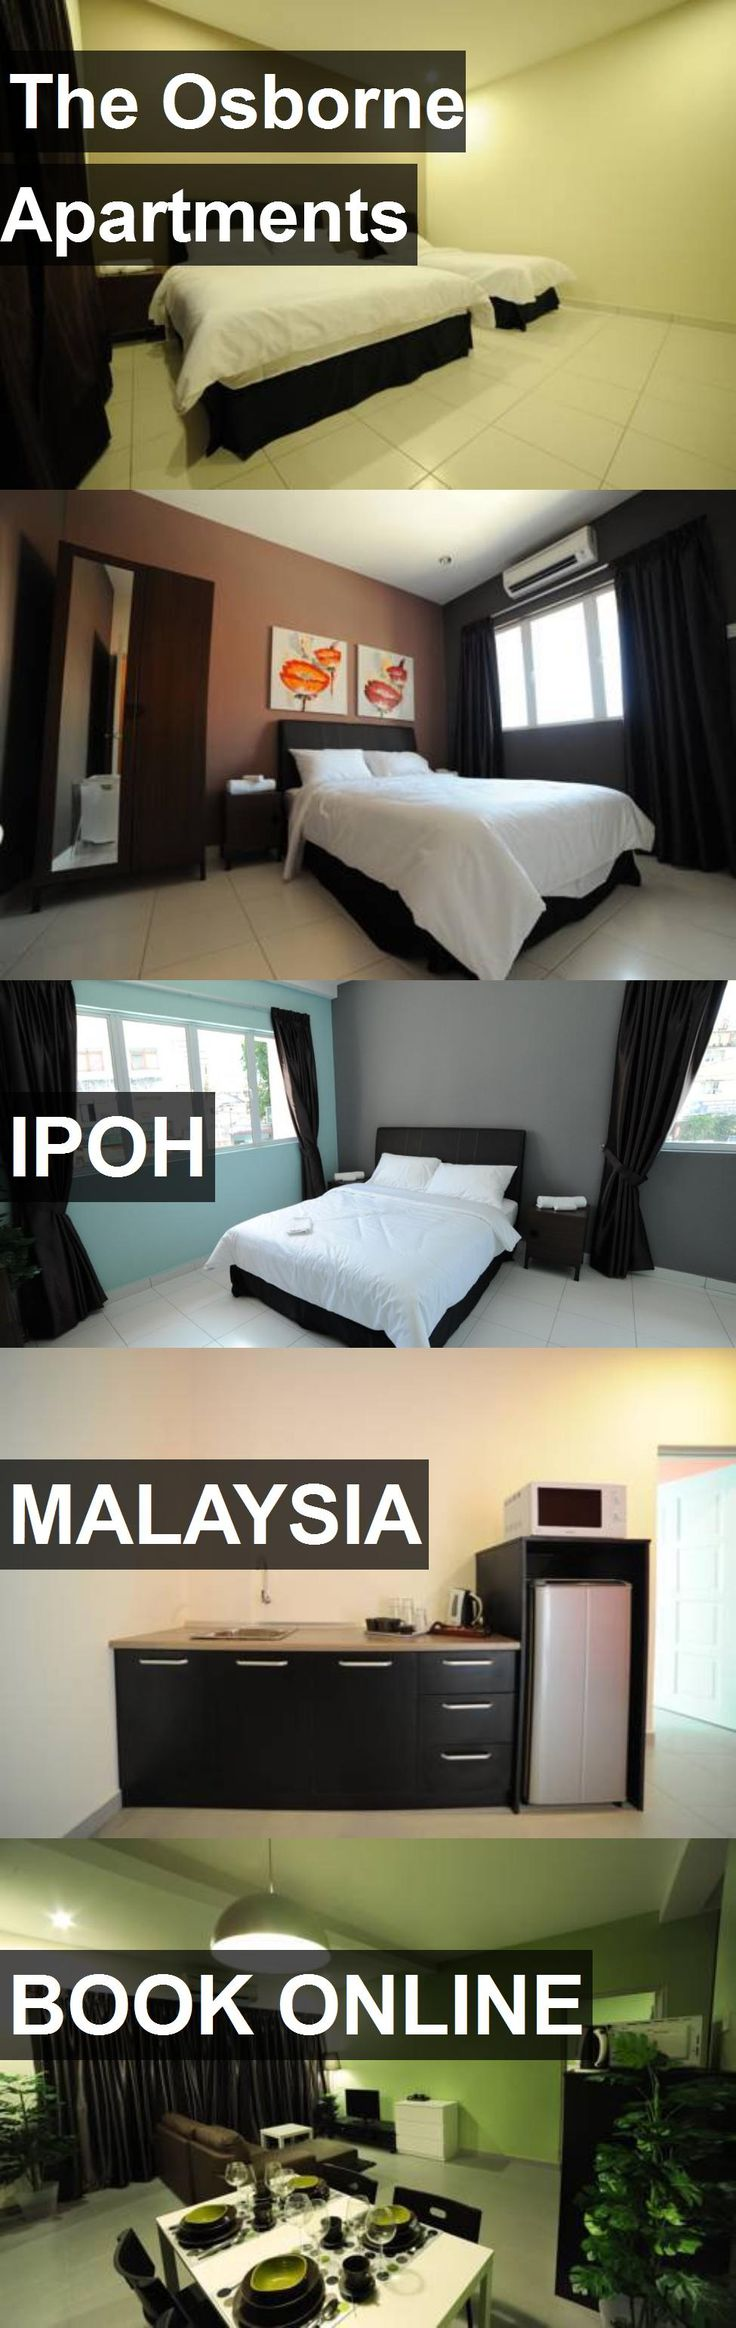 The Osborne Apartments in Ipoh, Malaysia. For more information, photos, reviews and best prices please follow the link. #Malaysia #Ipoh #travel #vacation #apartment